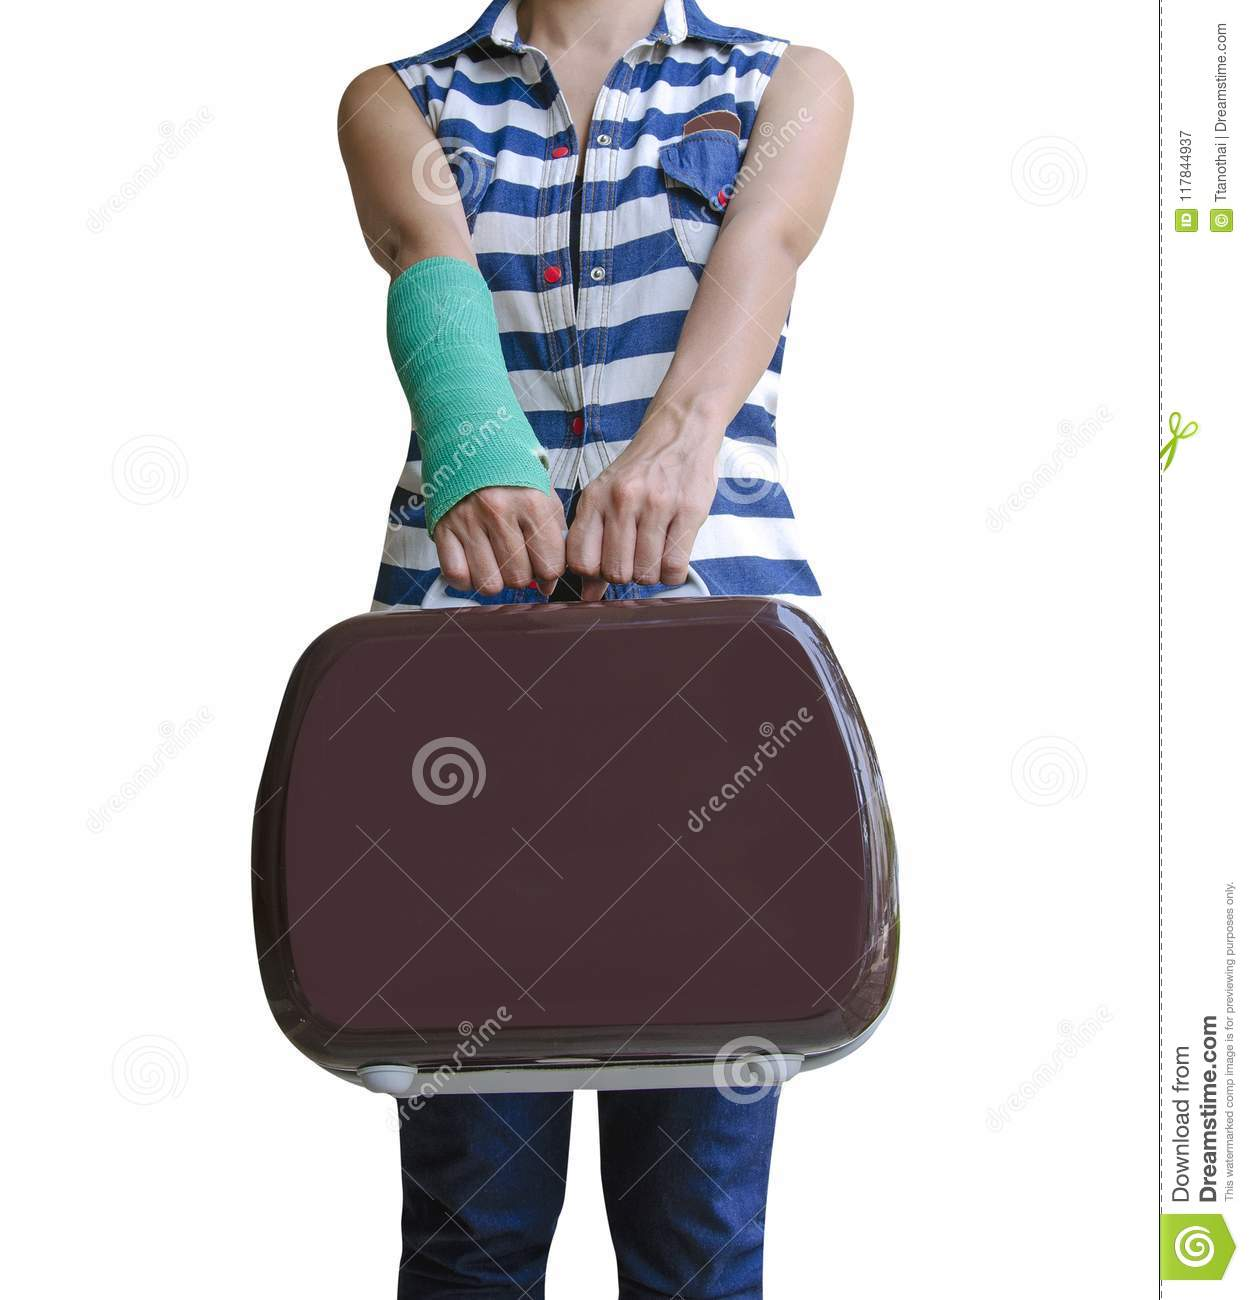 injured woman traveler broken arm in green cast standing and holding suitcase isolated on white background, clipping path included